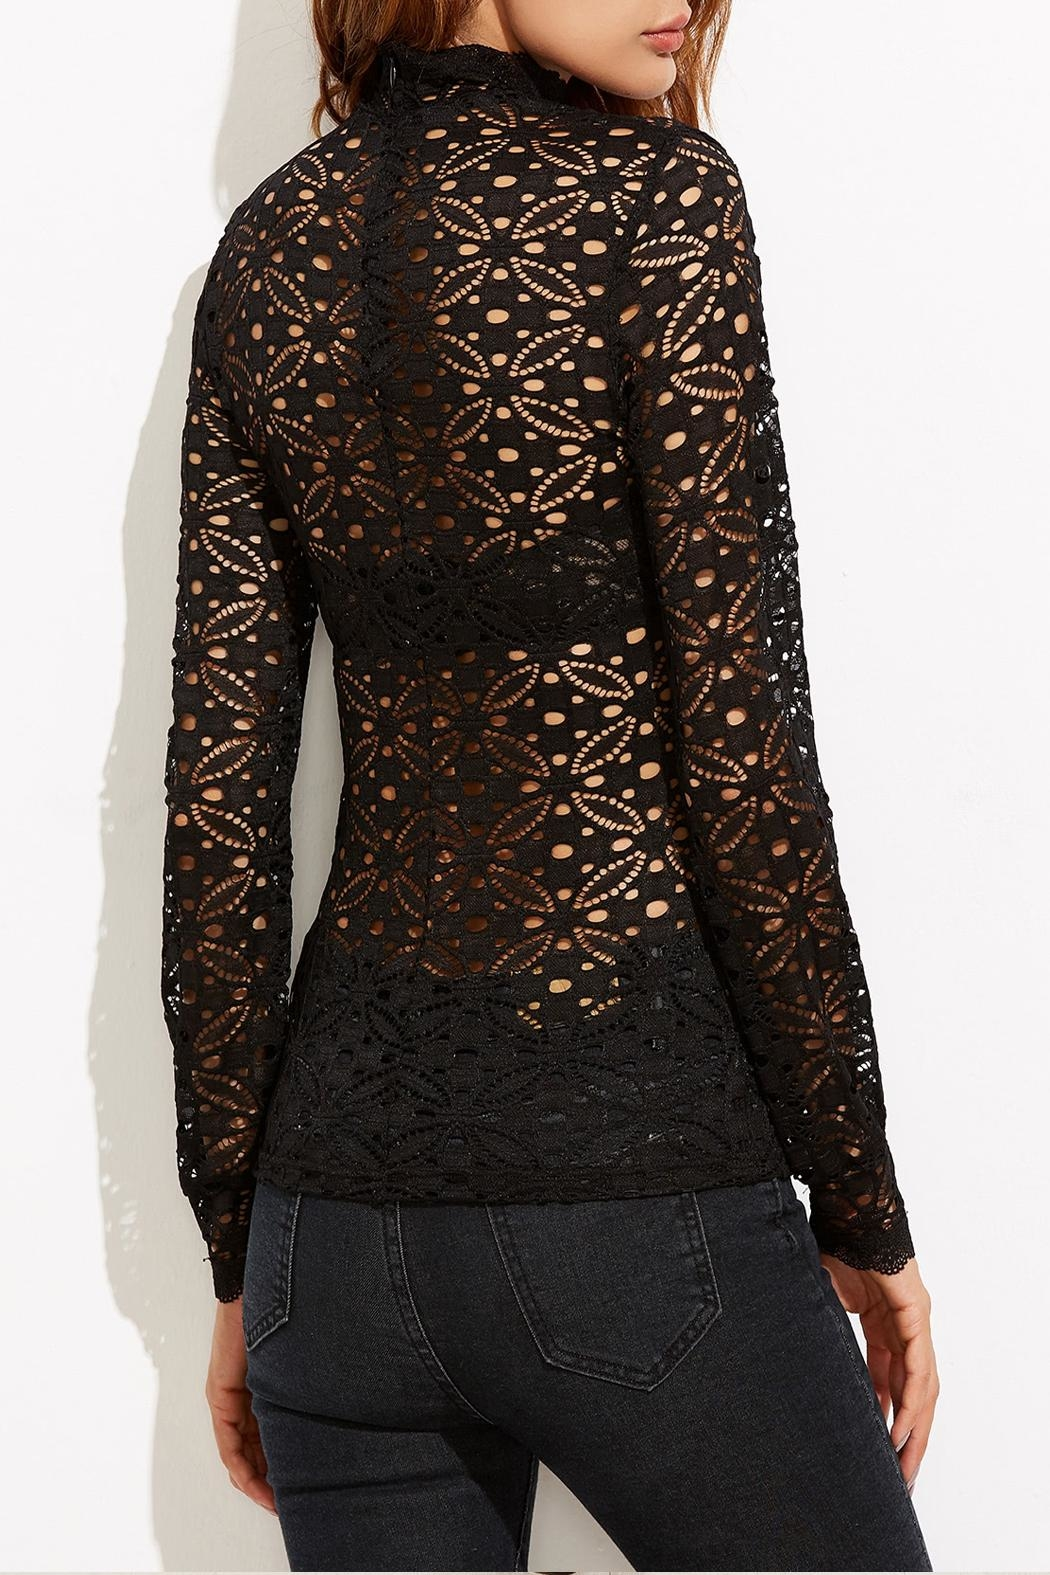 House of Atelier Floral Lace Blouse - Front Full Image